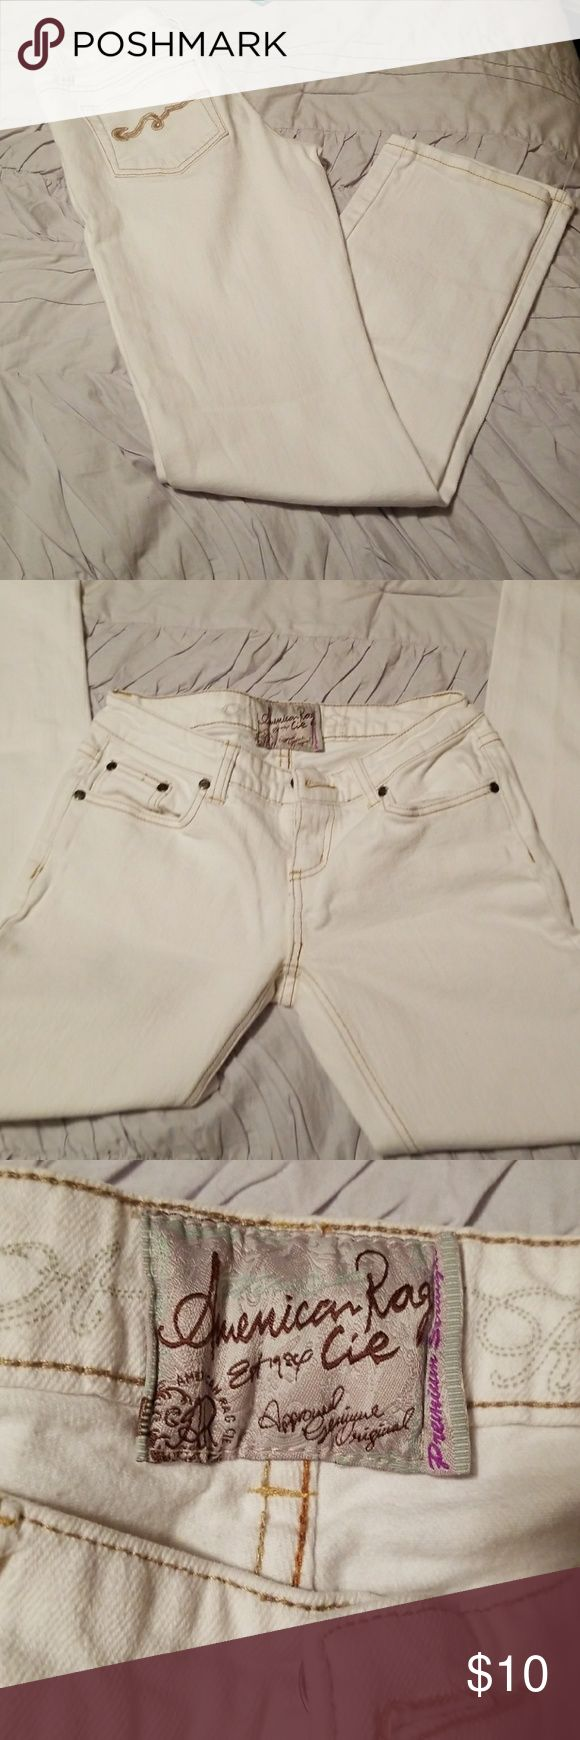 White jeans White straight leg jeans low rise very comfortable. American Rag Jeans Straight Leg